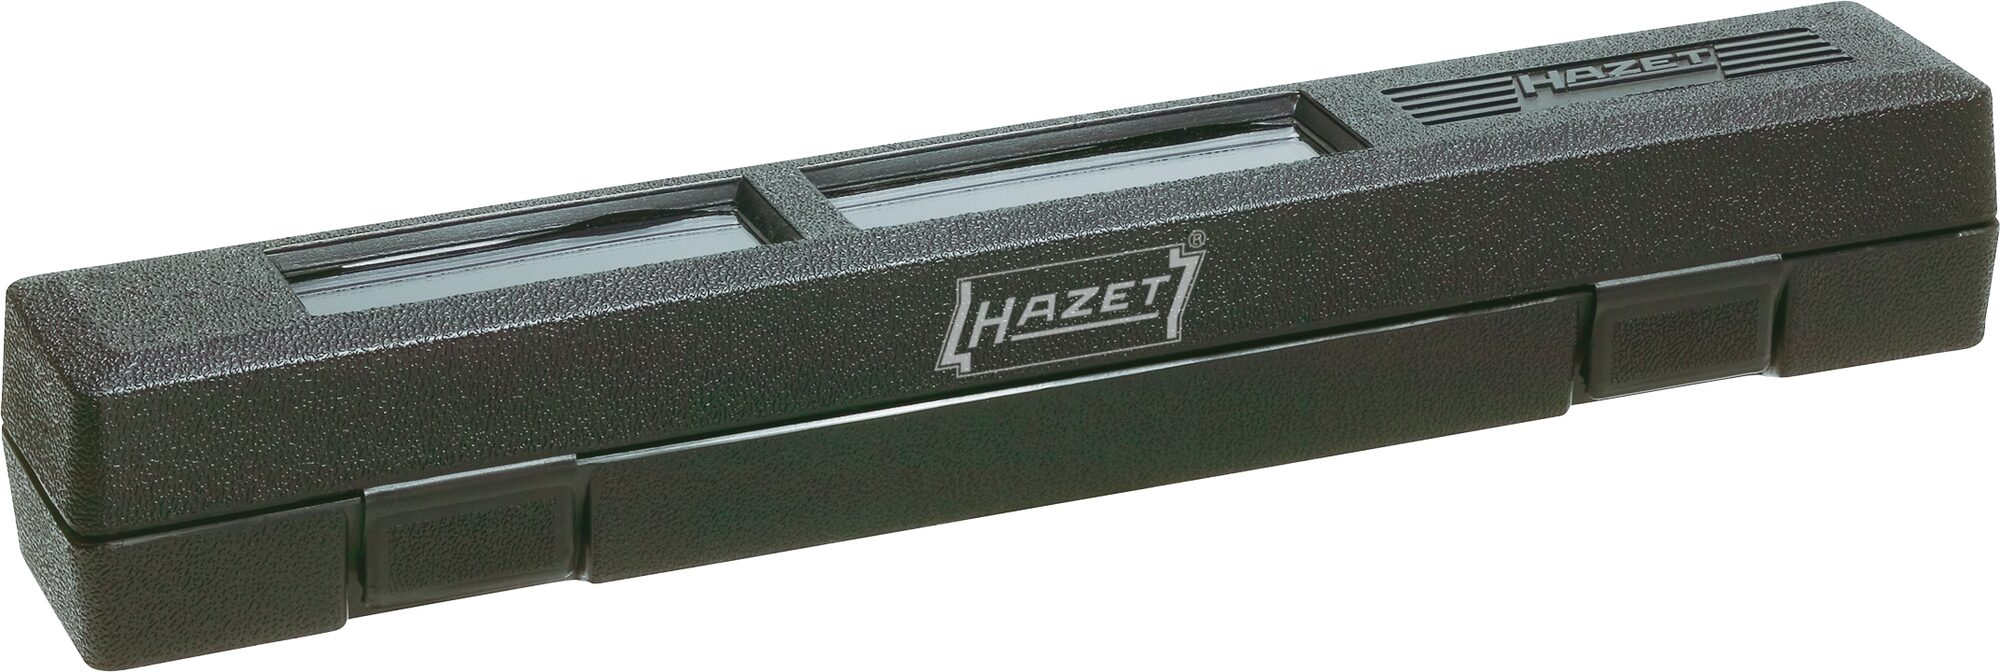 HAZET Safe Box 6060BX-2